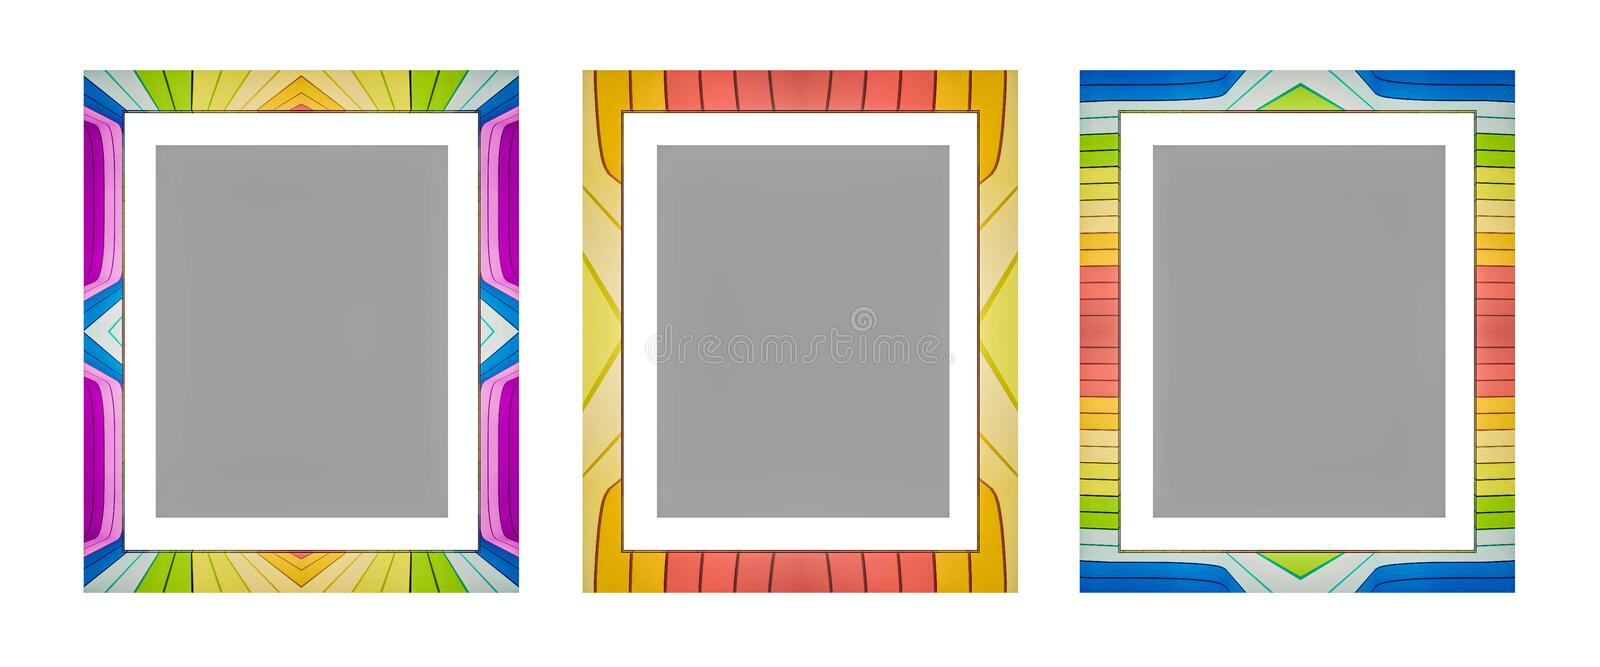 3d rendered, colorful picture frame, isolated on white background. 3d rendered. colorful picture frame, isolated on white background vector illustration